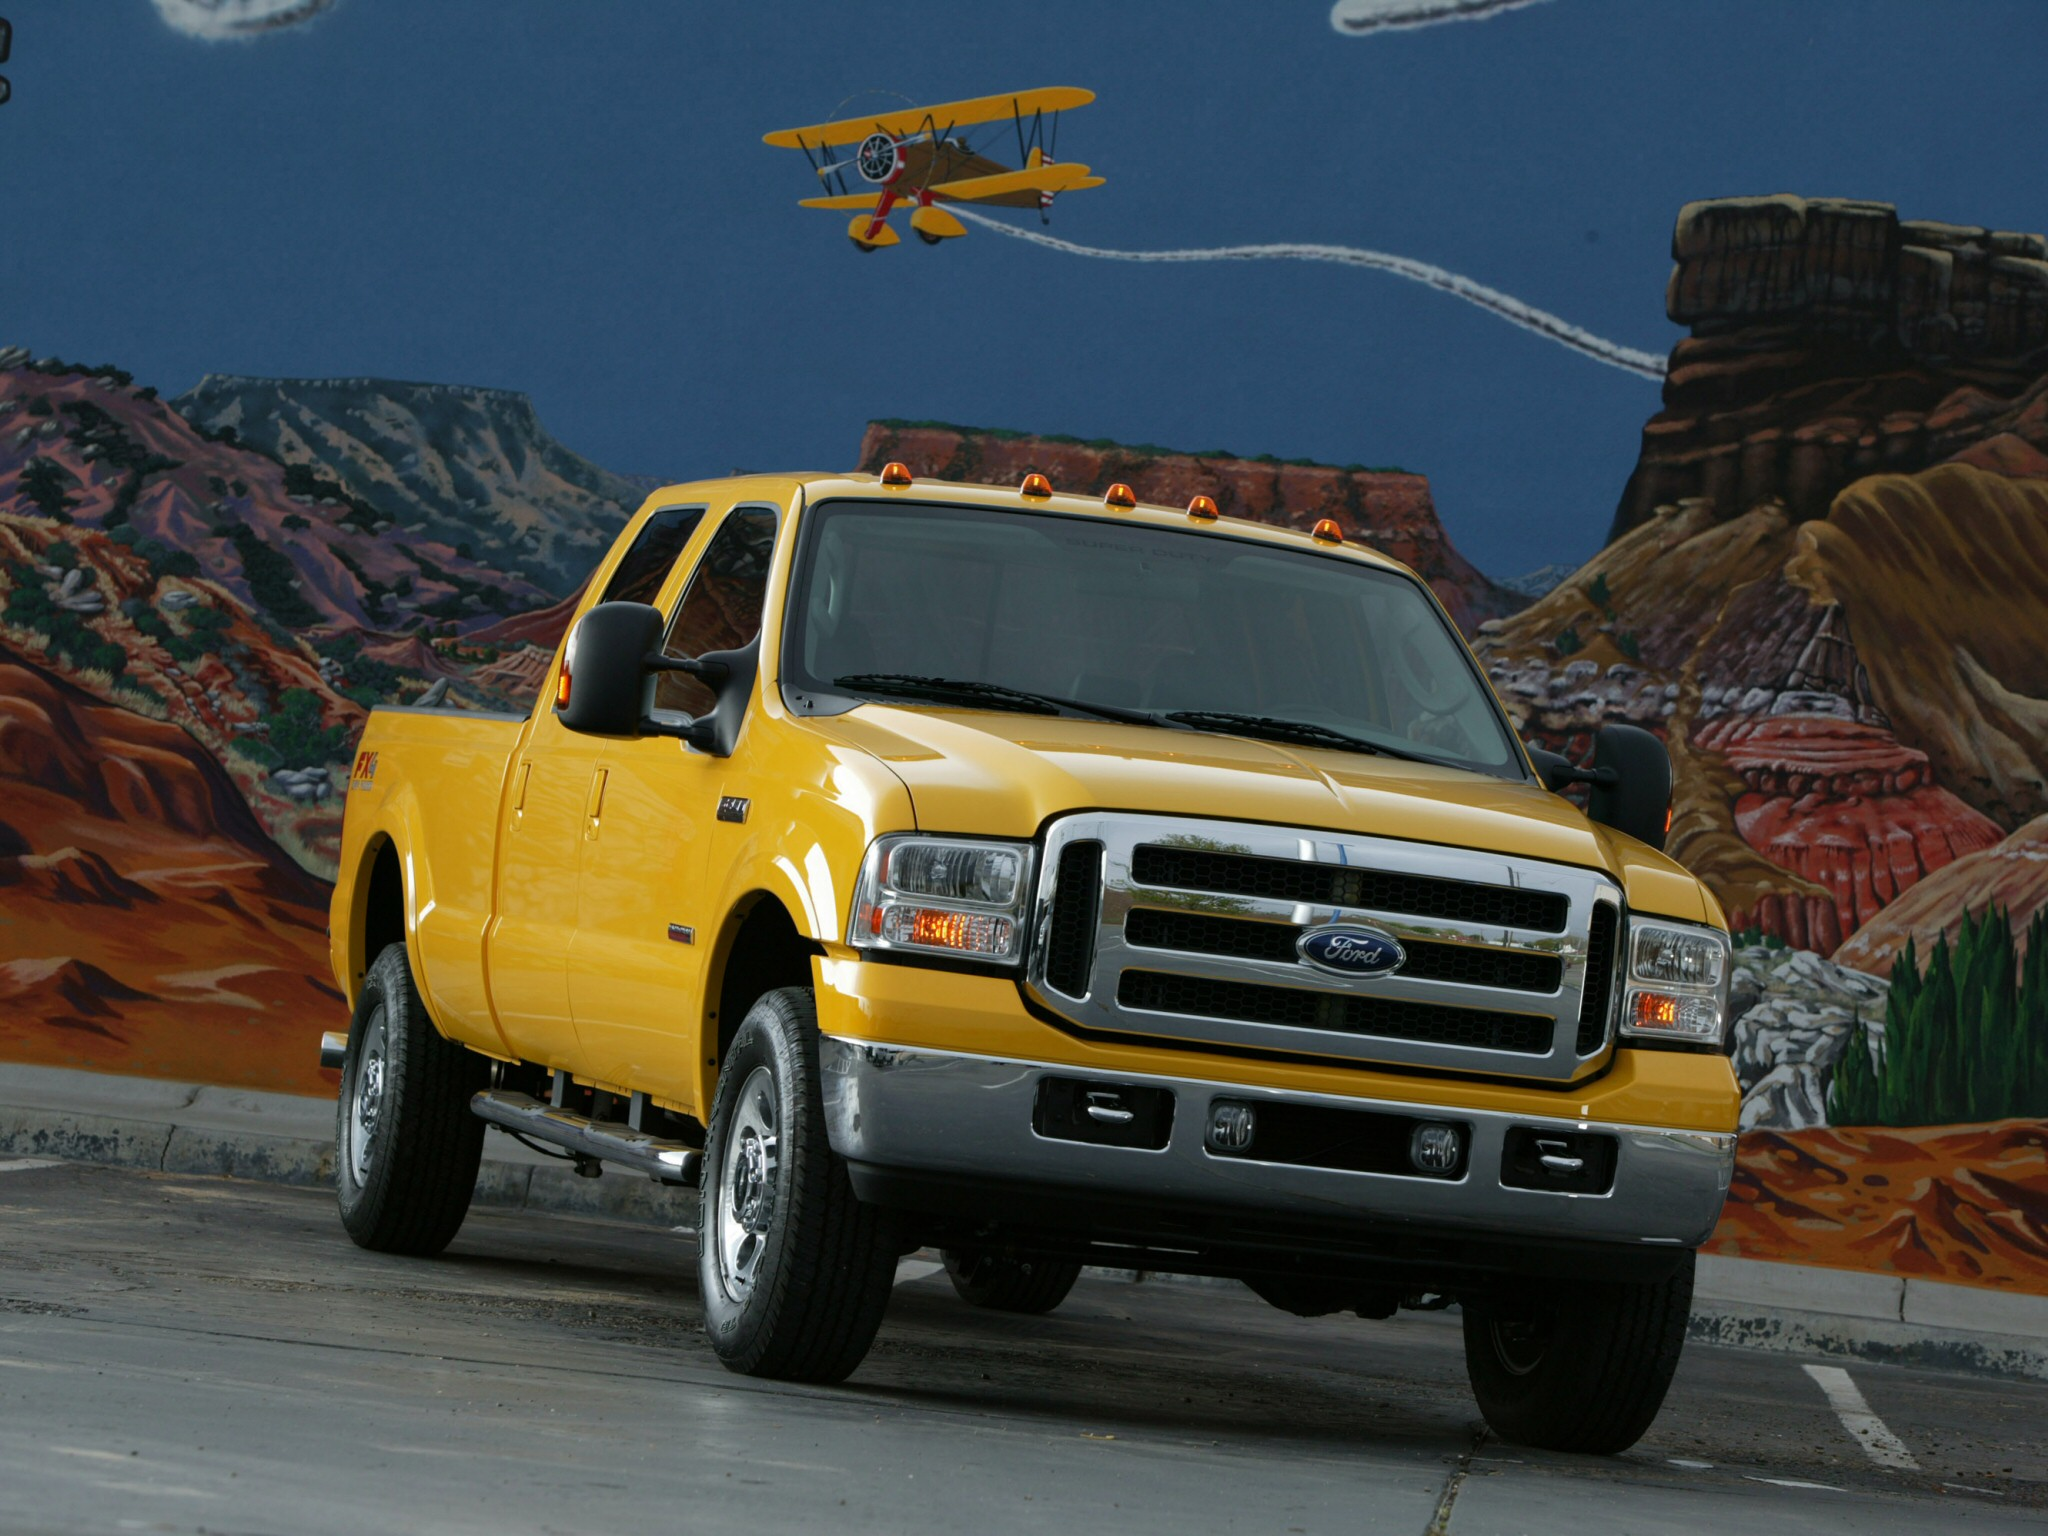 2005 Ford F 350 SuperDuty truck 4x4 d wallpaper background 2048x1536